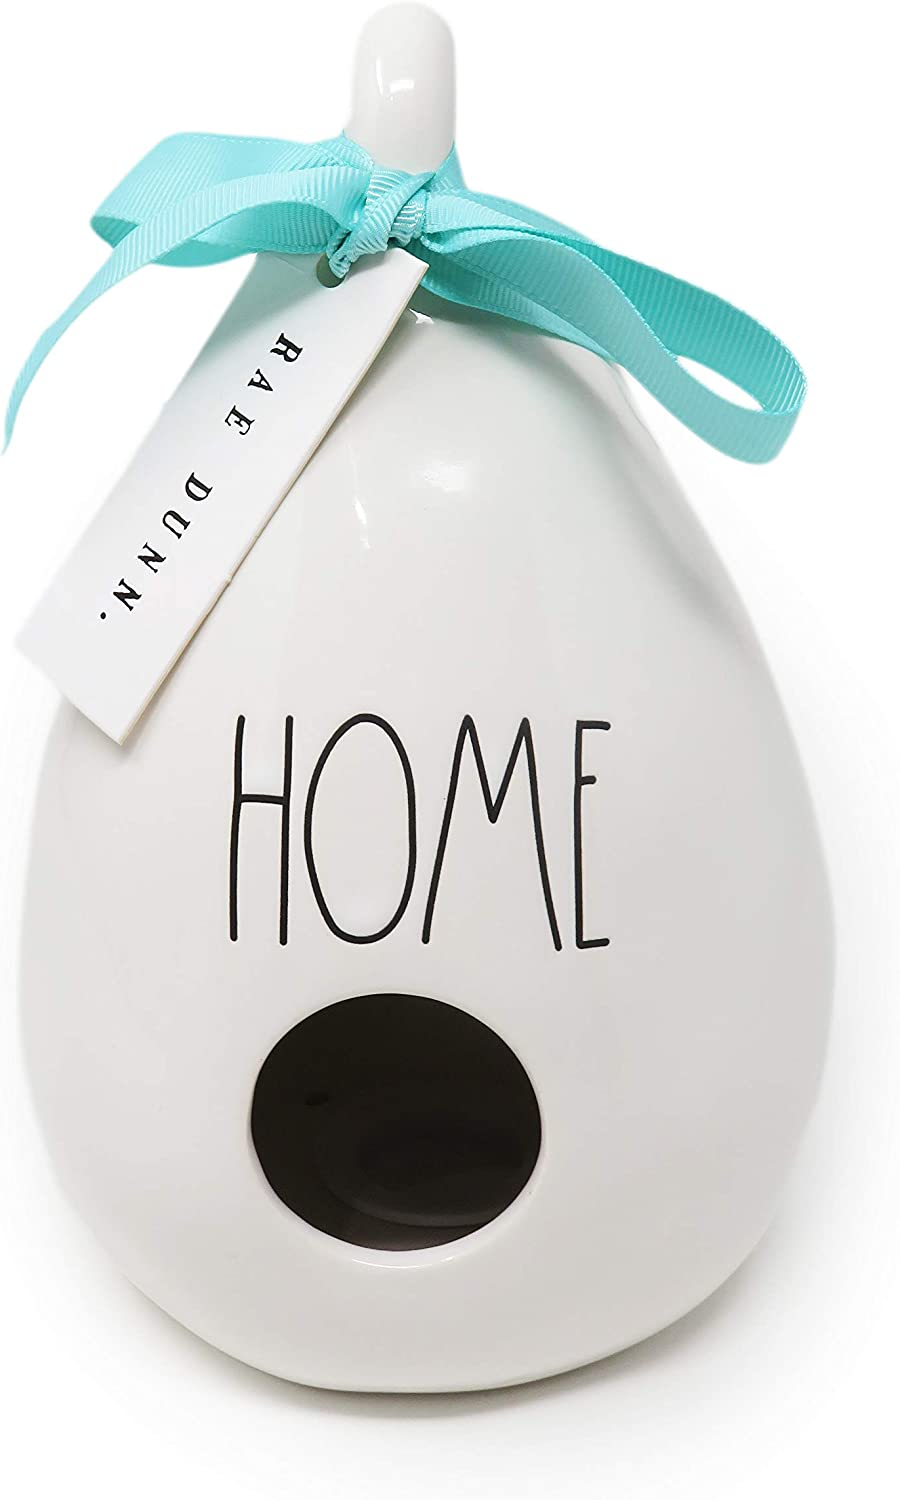 Rae Dunn By Magenta Home Ceramic LL Pear Teardrop Shaped Decorative Birdhouse with Dragonfly Image Art & Mint Blue Ribbon 2020 Limited Edition